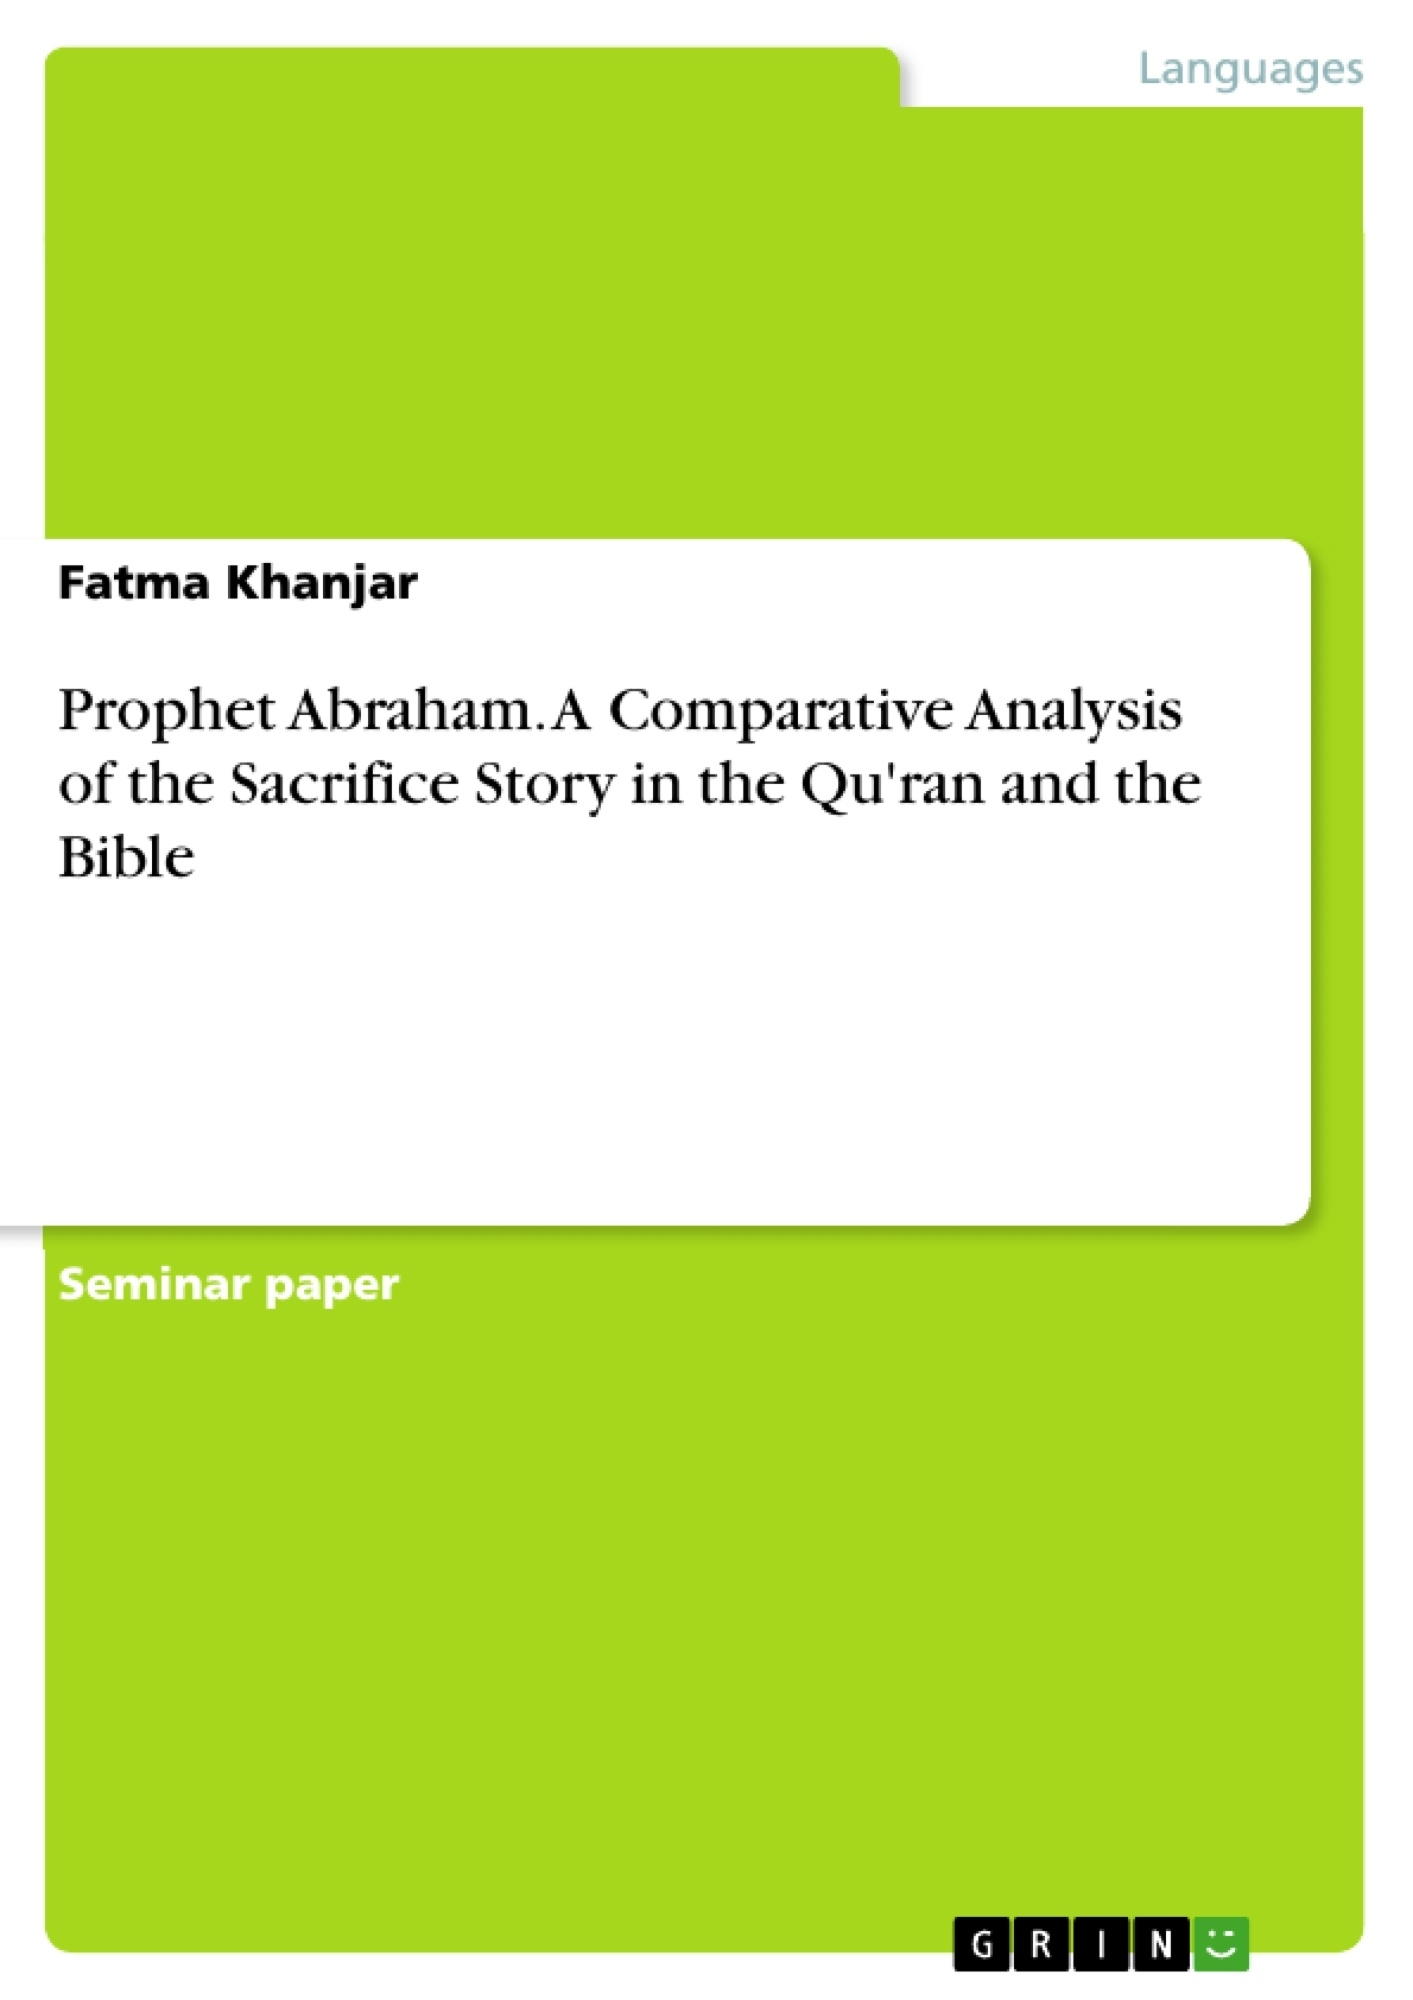 Title: Prophet Abraham. A Comparative Analysis of the Sacrifice Story in the Qu'ran and the Bible